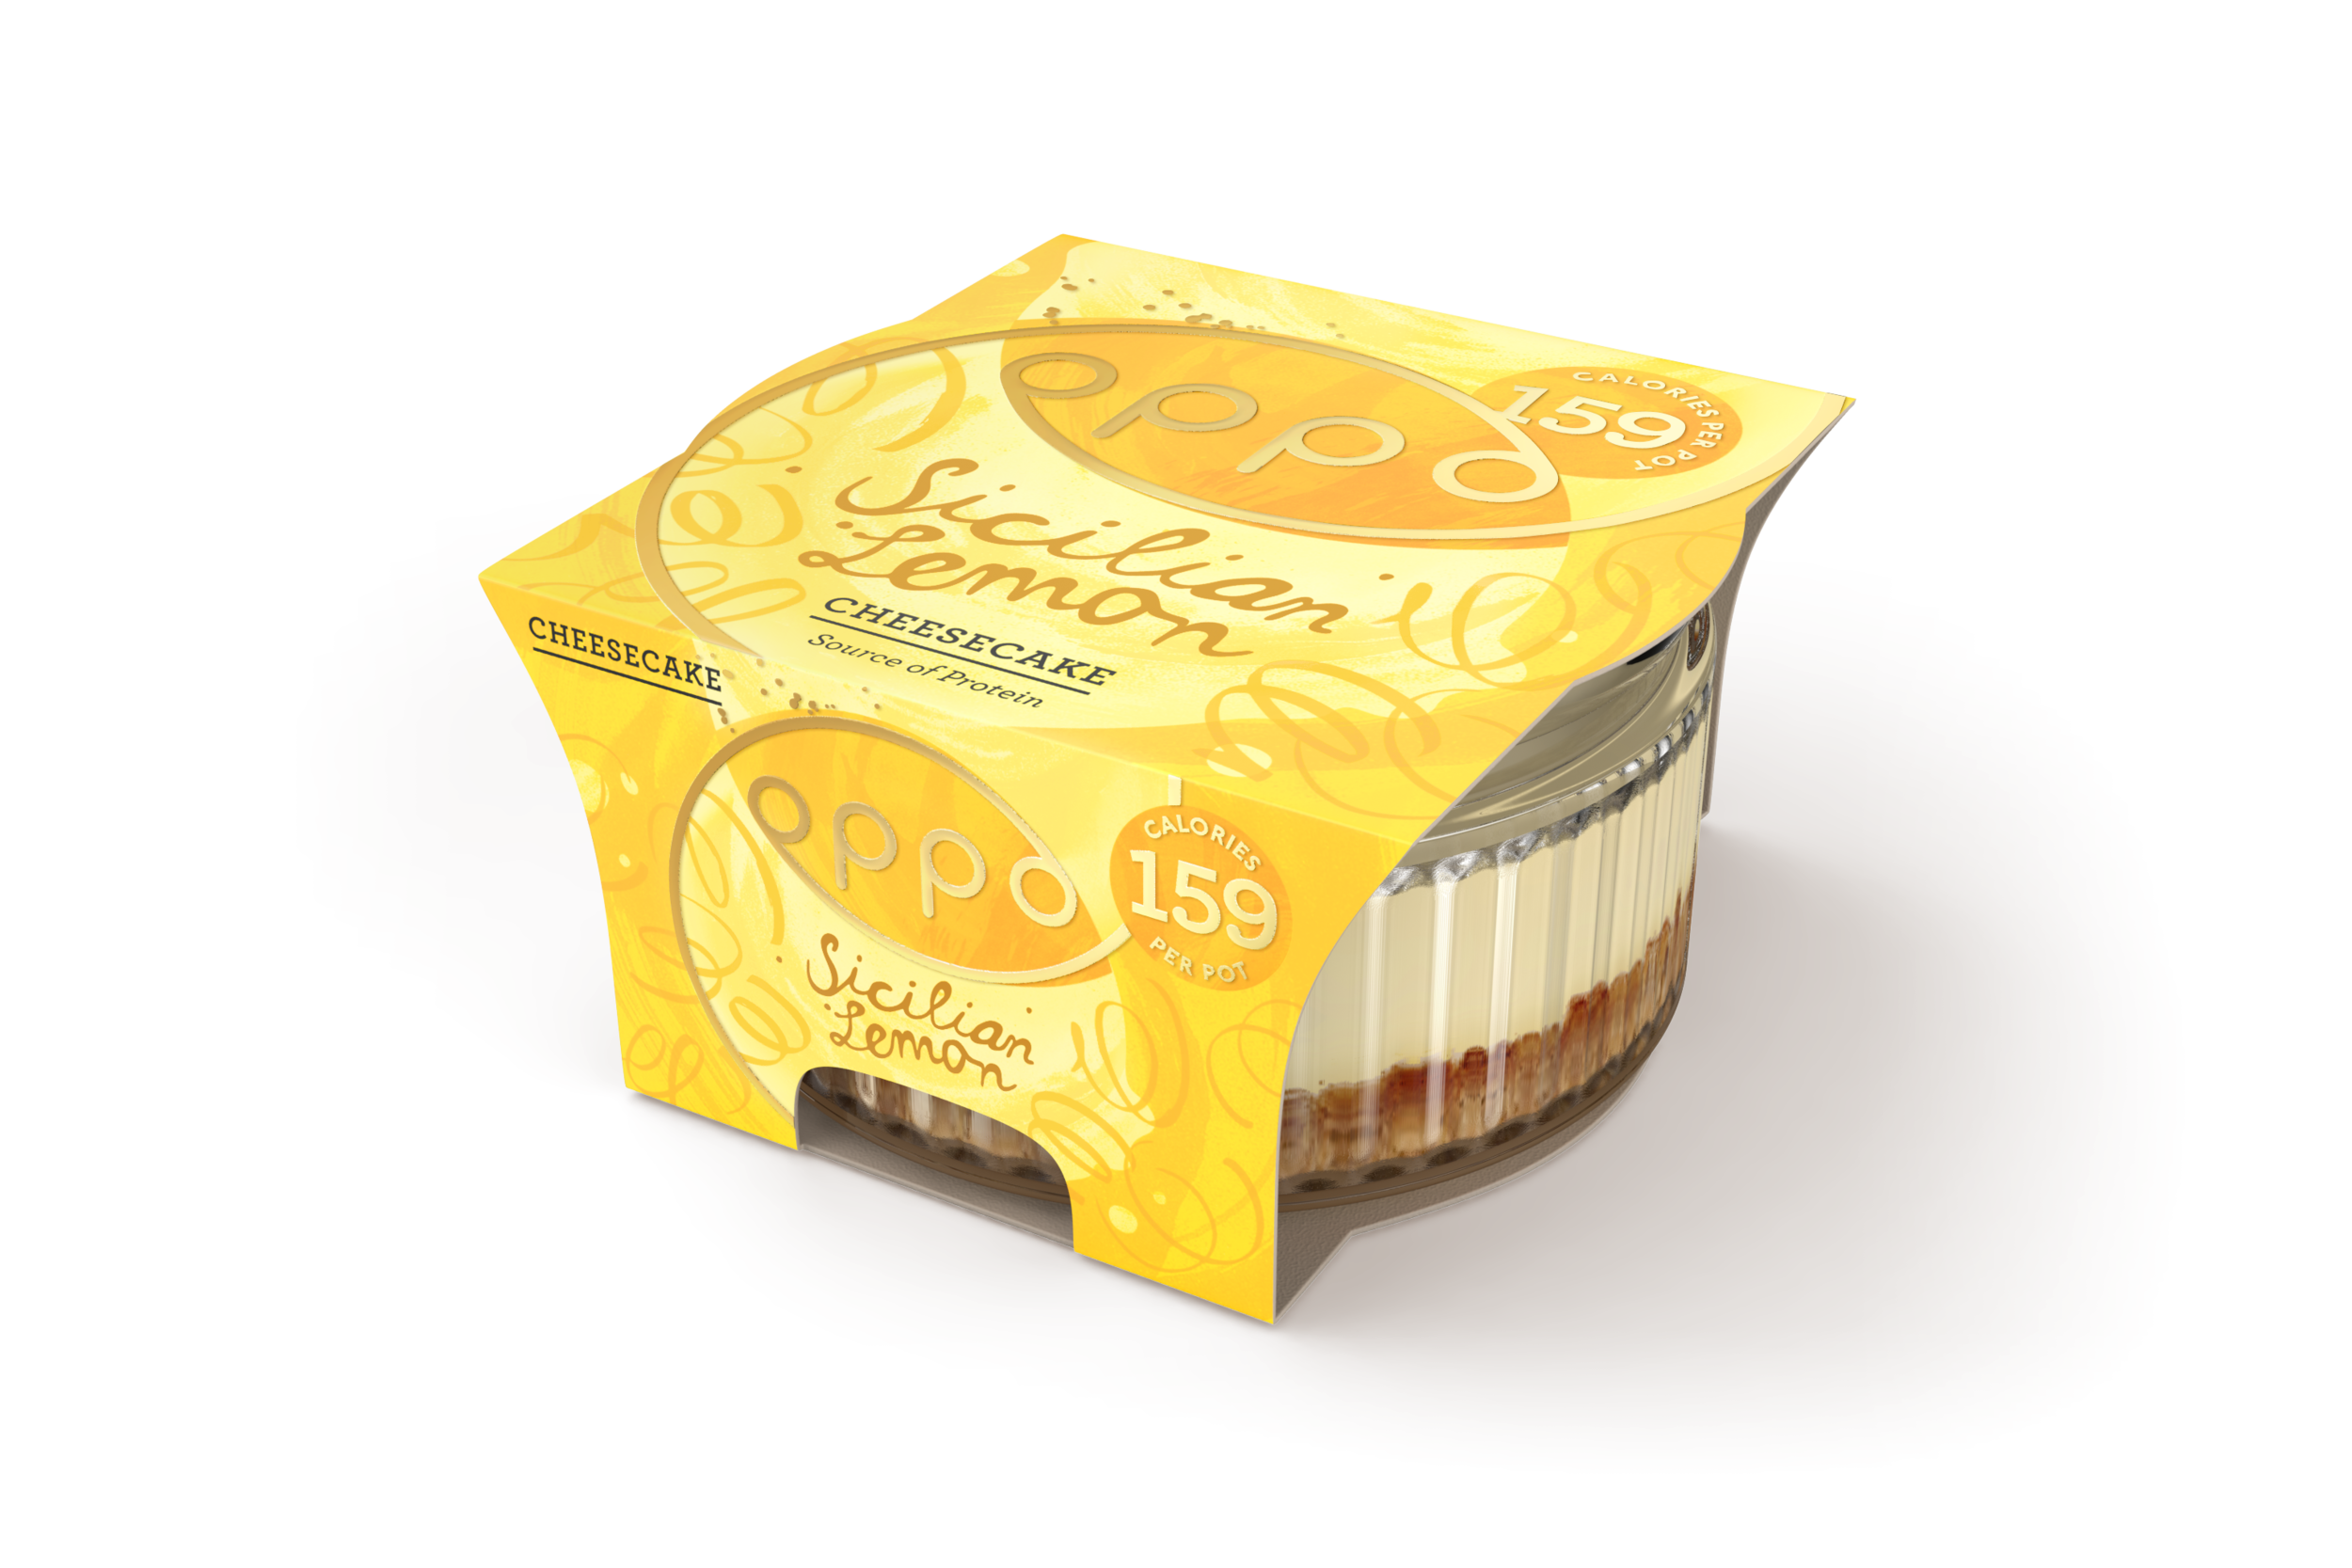 Oppo Sicilian Lemon Cheesecake Low Calorie